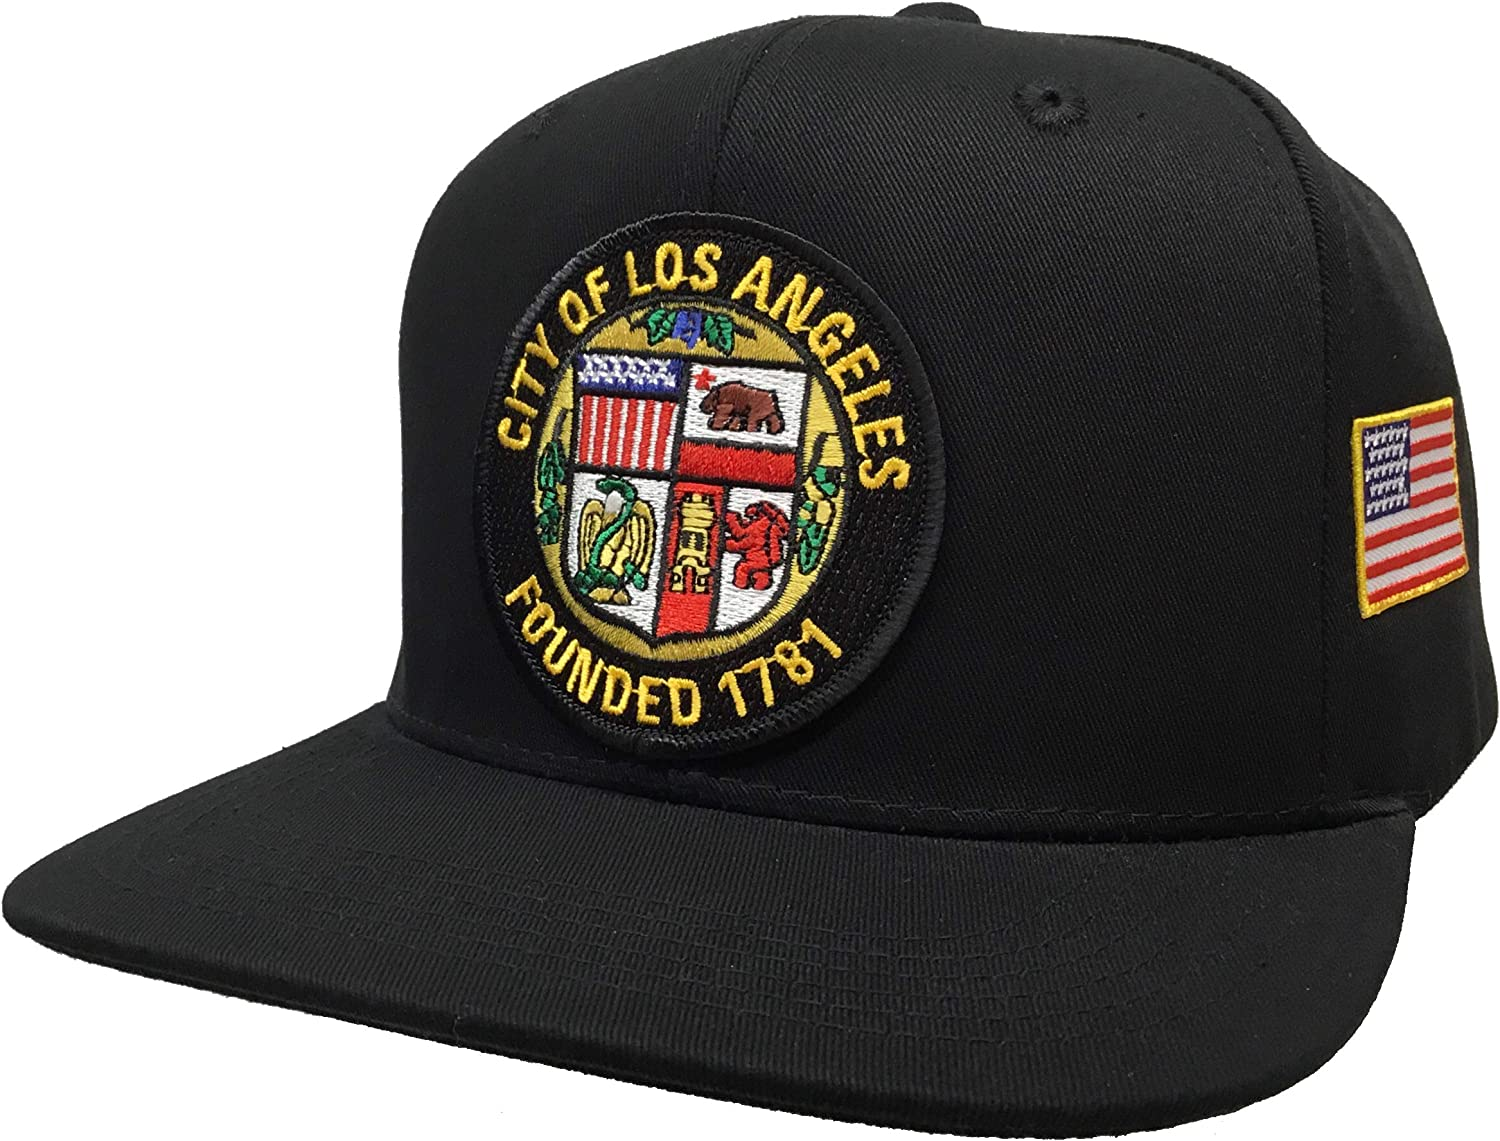 City of Los Angeles with small usa flag yellow 2 logos Hat Black SnapBack